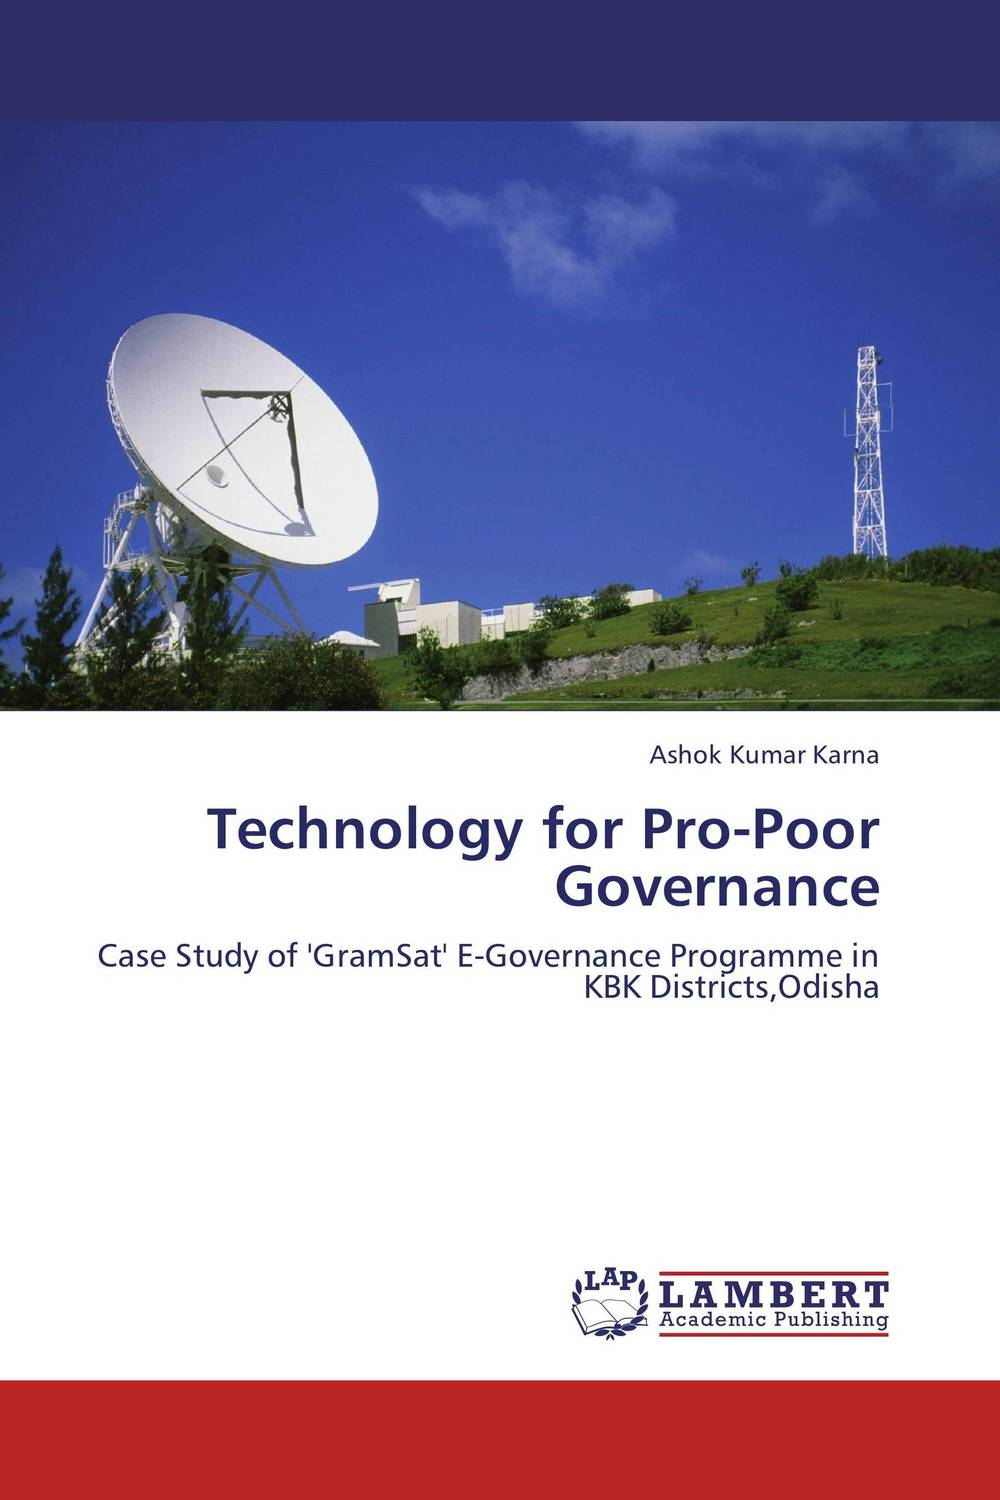 Technology for Pro-Poor Governance shariah governance structure of ibf in malaysia indonesia and kuwait